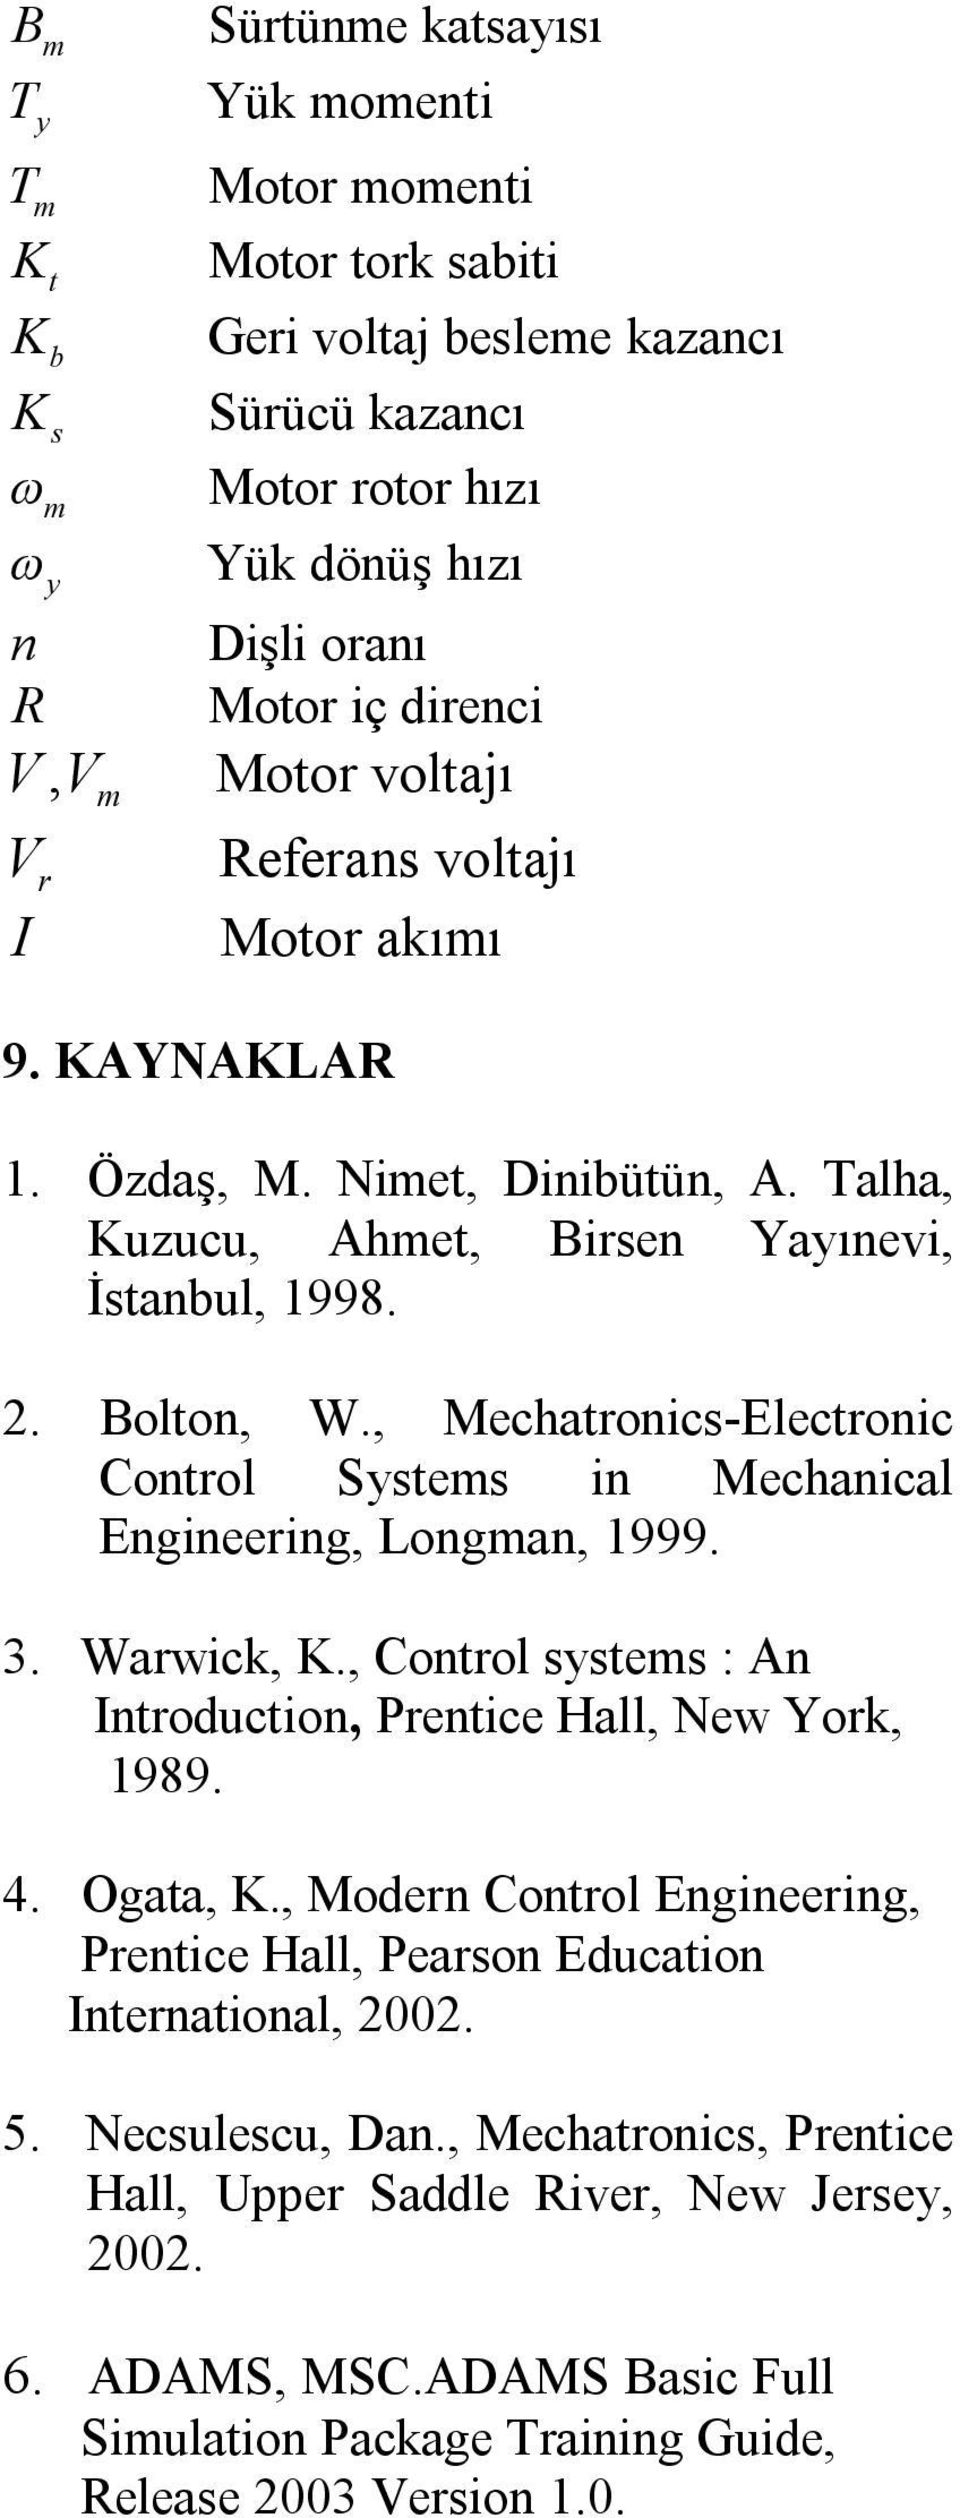 , Mechatronic-Electronic Control Ste in Mechanical Engineering, Longan, 999. 3. Warwick,., Control te : An Introduction, Prentice Hall, New York, 989. 4. Ogata,.